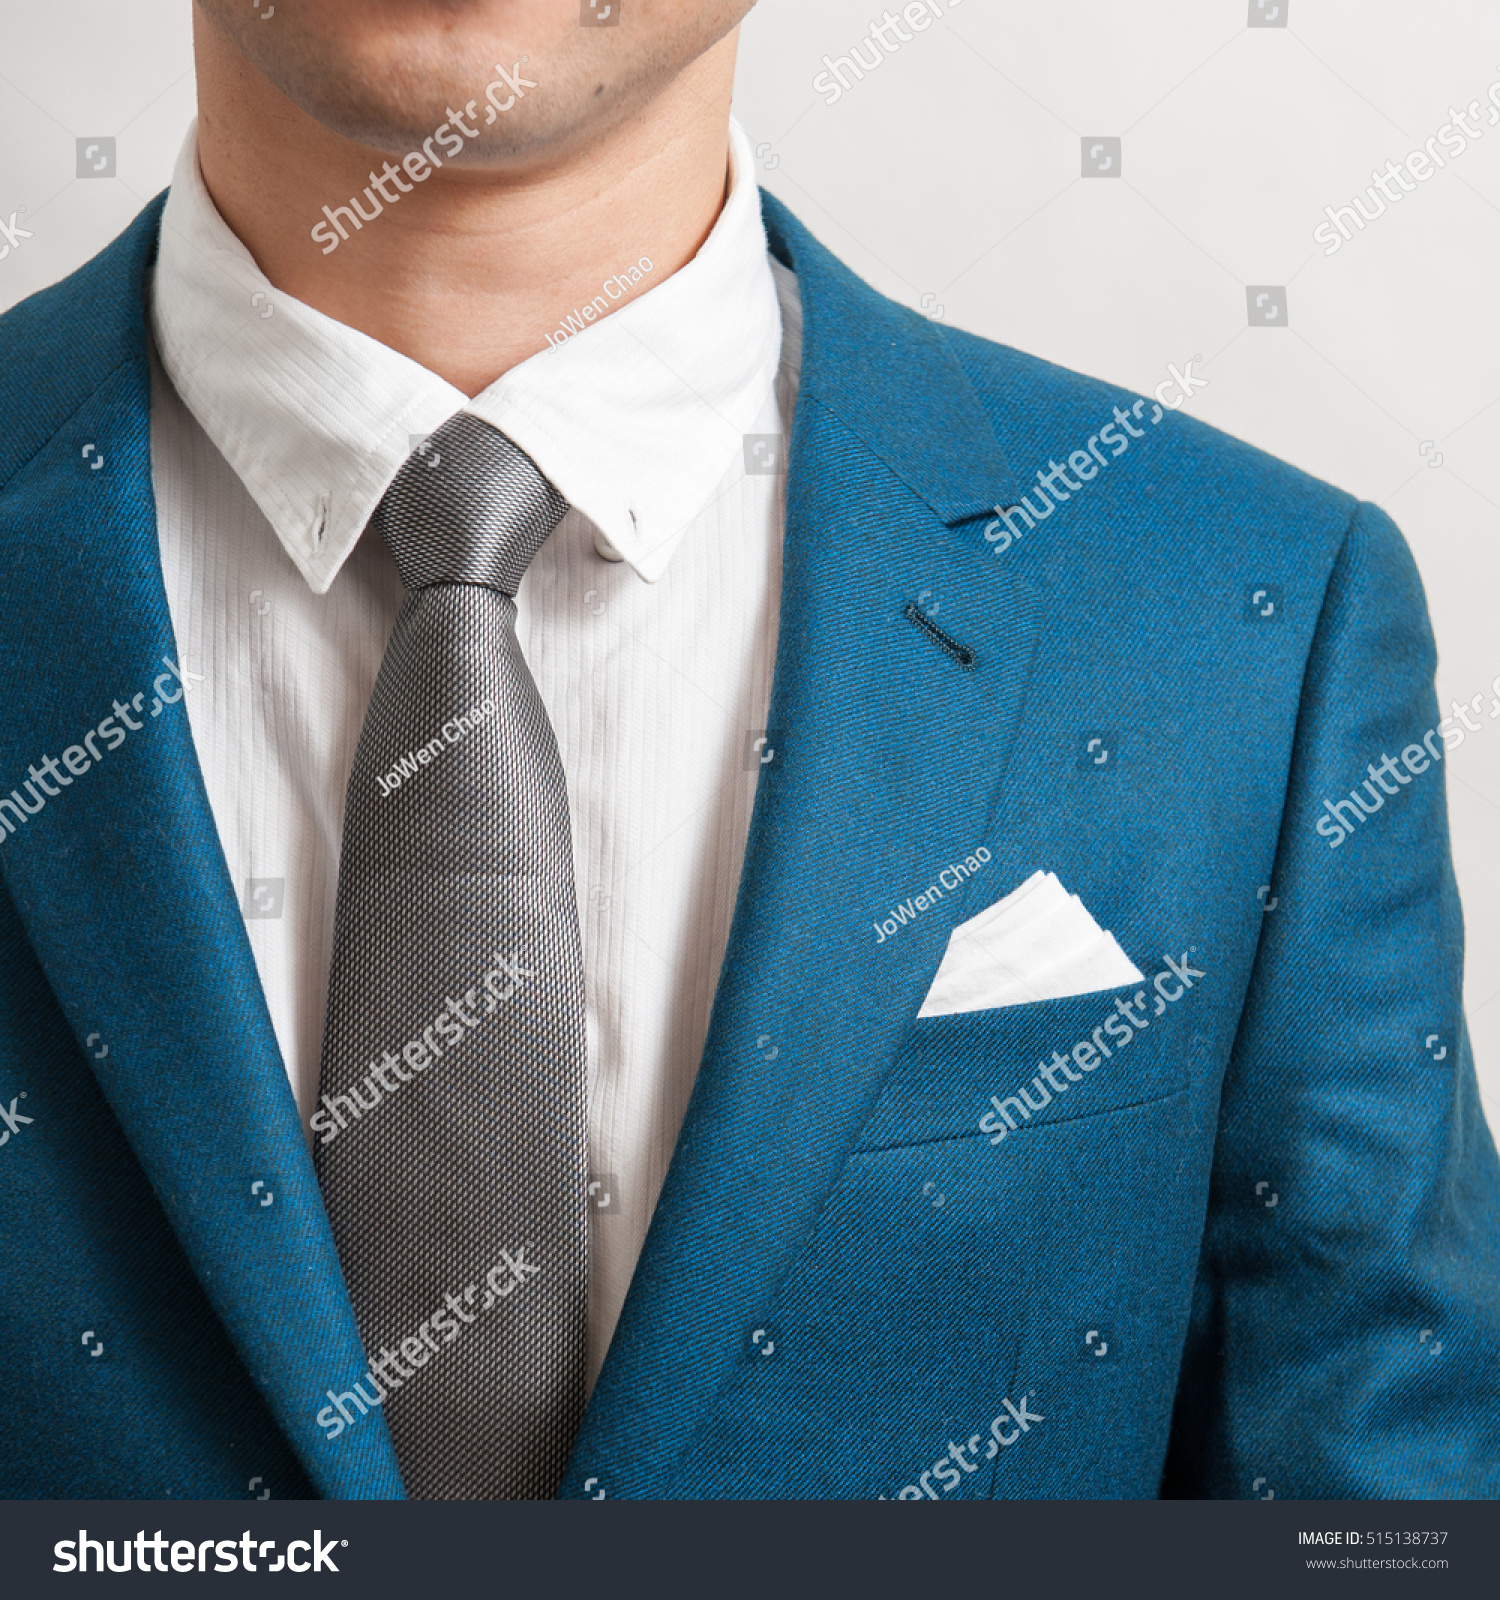 Man Blue Suit Silver Necktie White Stock Photo (Royalty Free ...